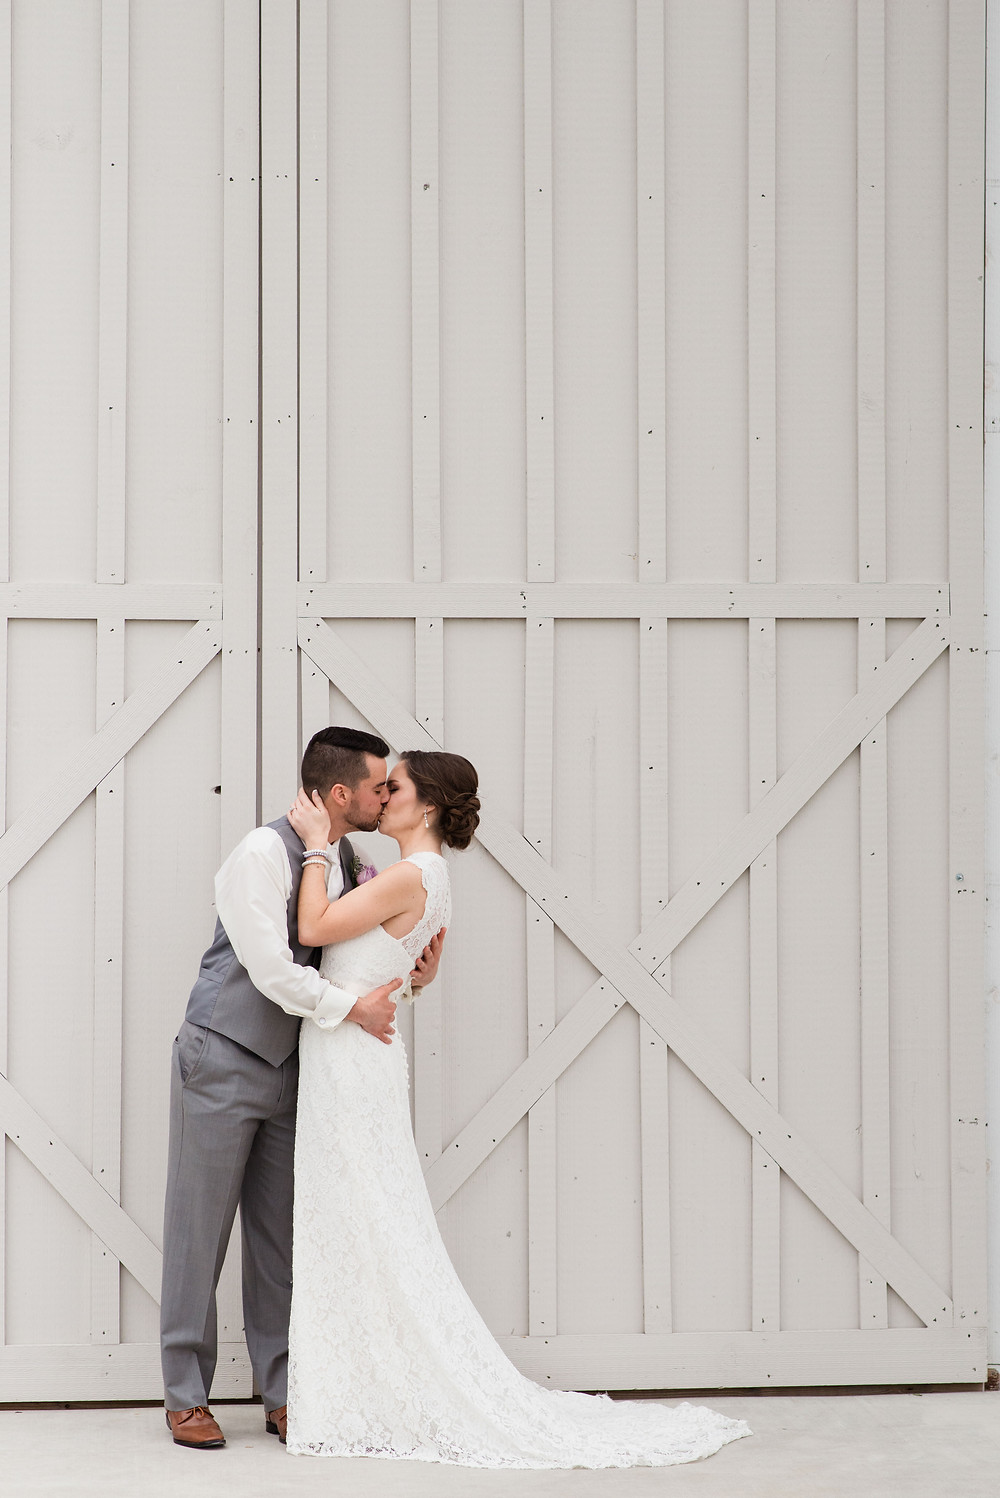 Kylan Barn doors for rustic charm first look photos.